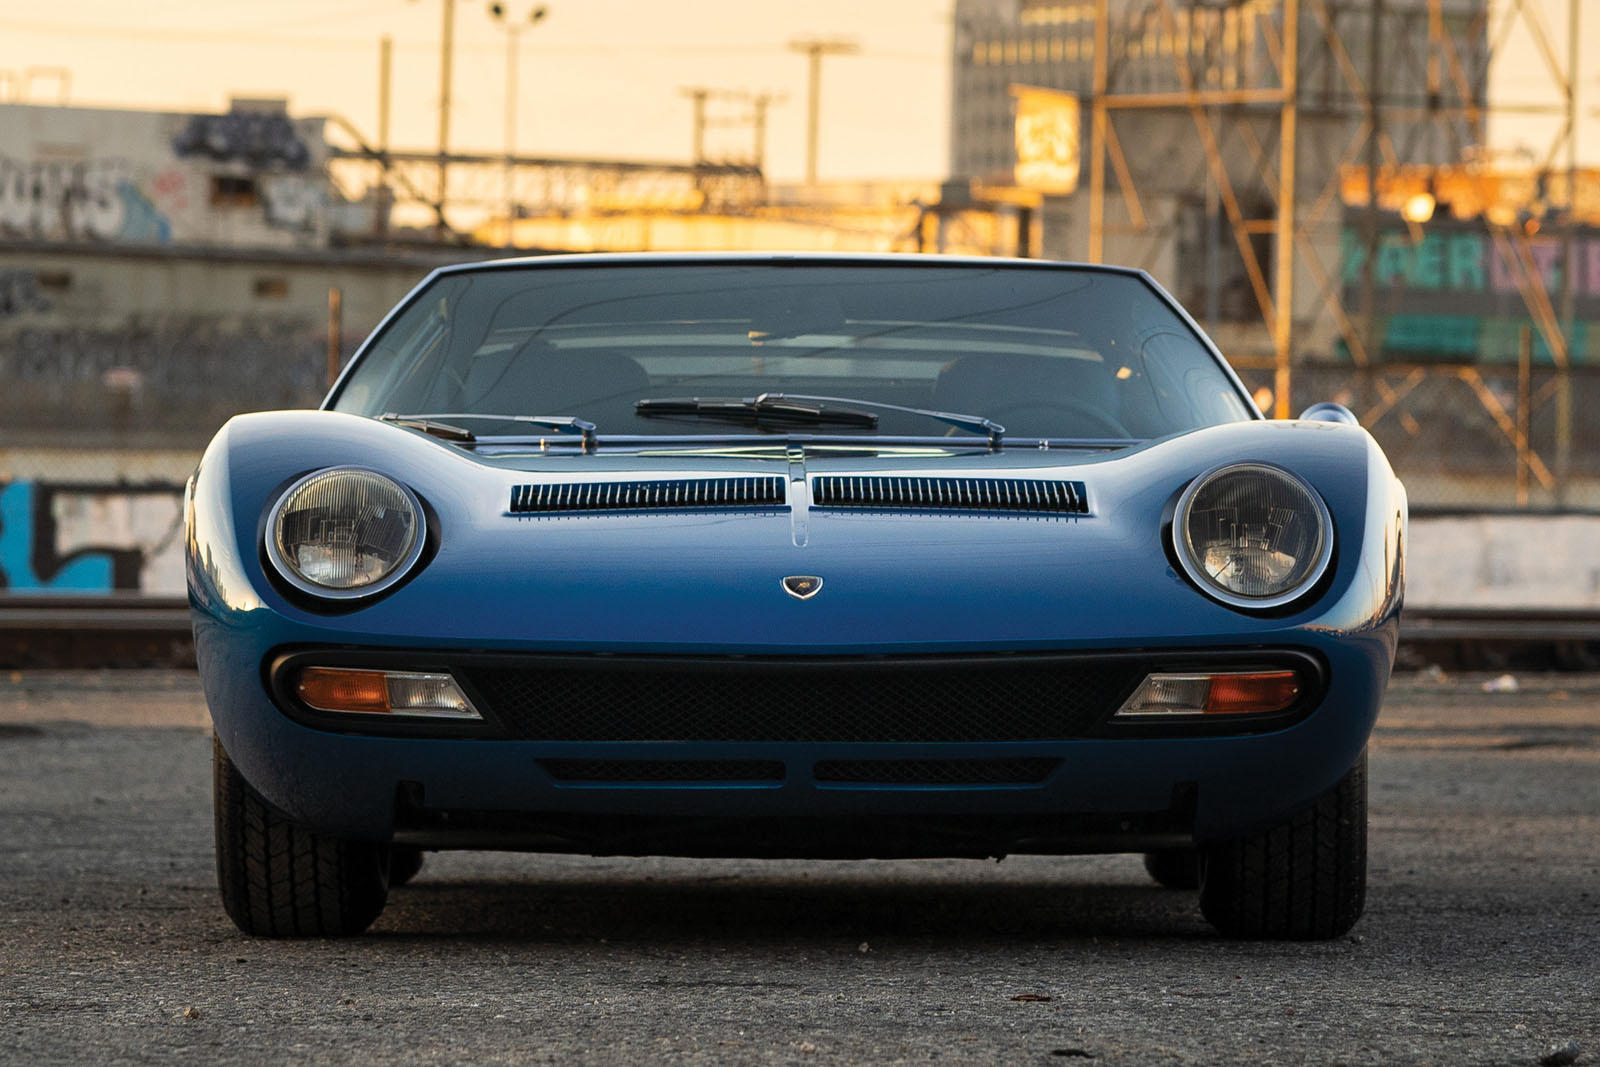 This Lambo Miura Sv Just Sold For 2 2 Million But There S Another